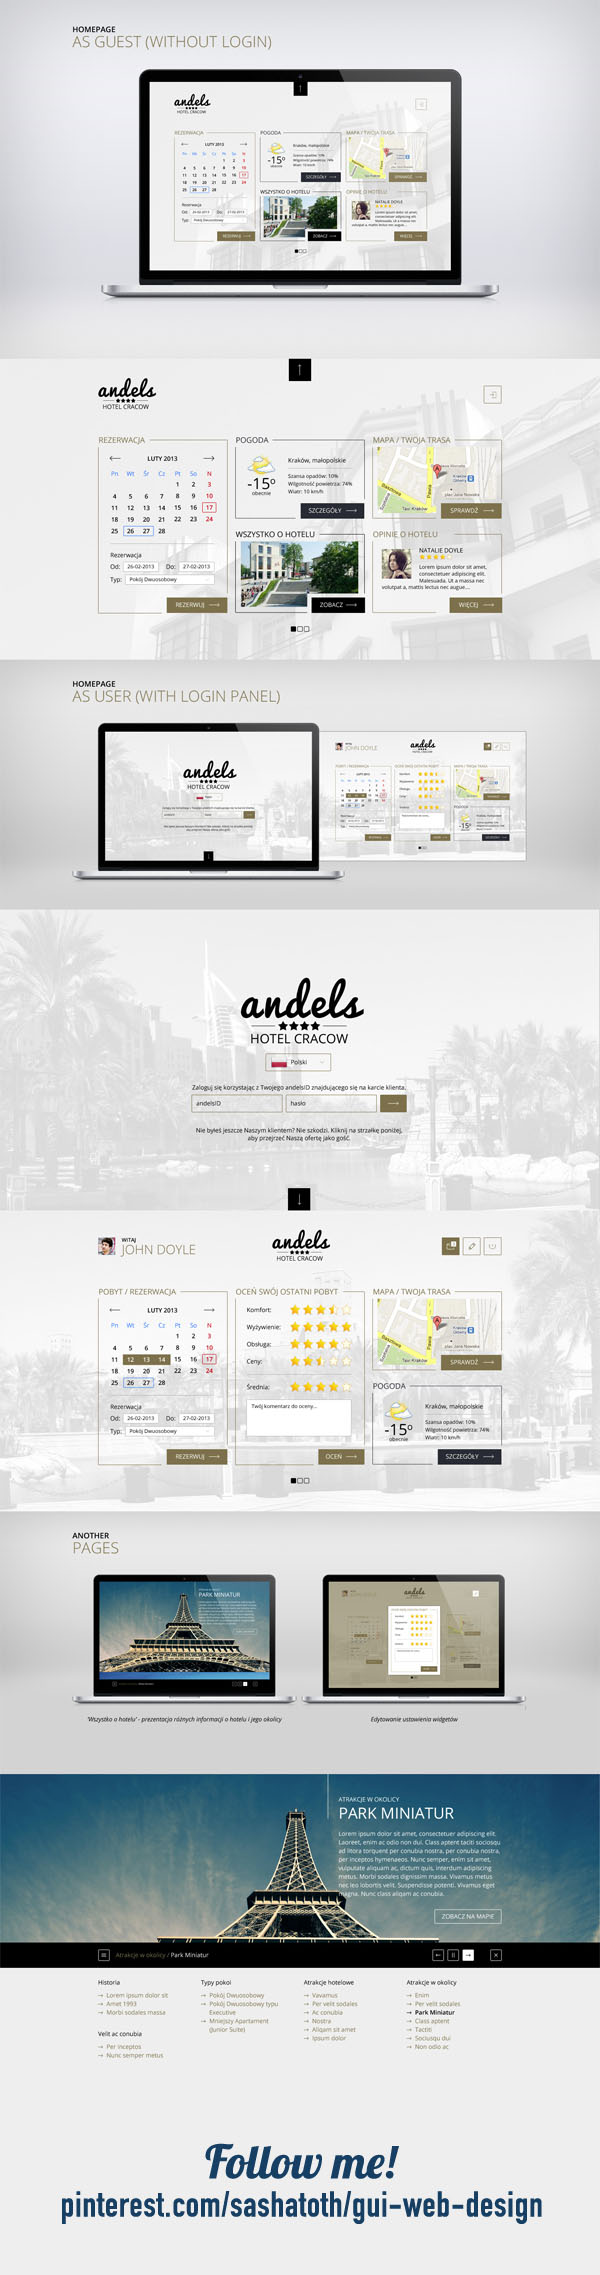 Hotel by WuHaDesign, via Deviantart *** Project inspired by metro ui